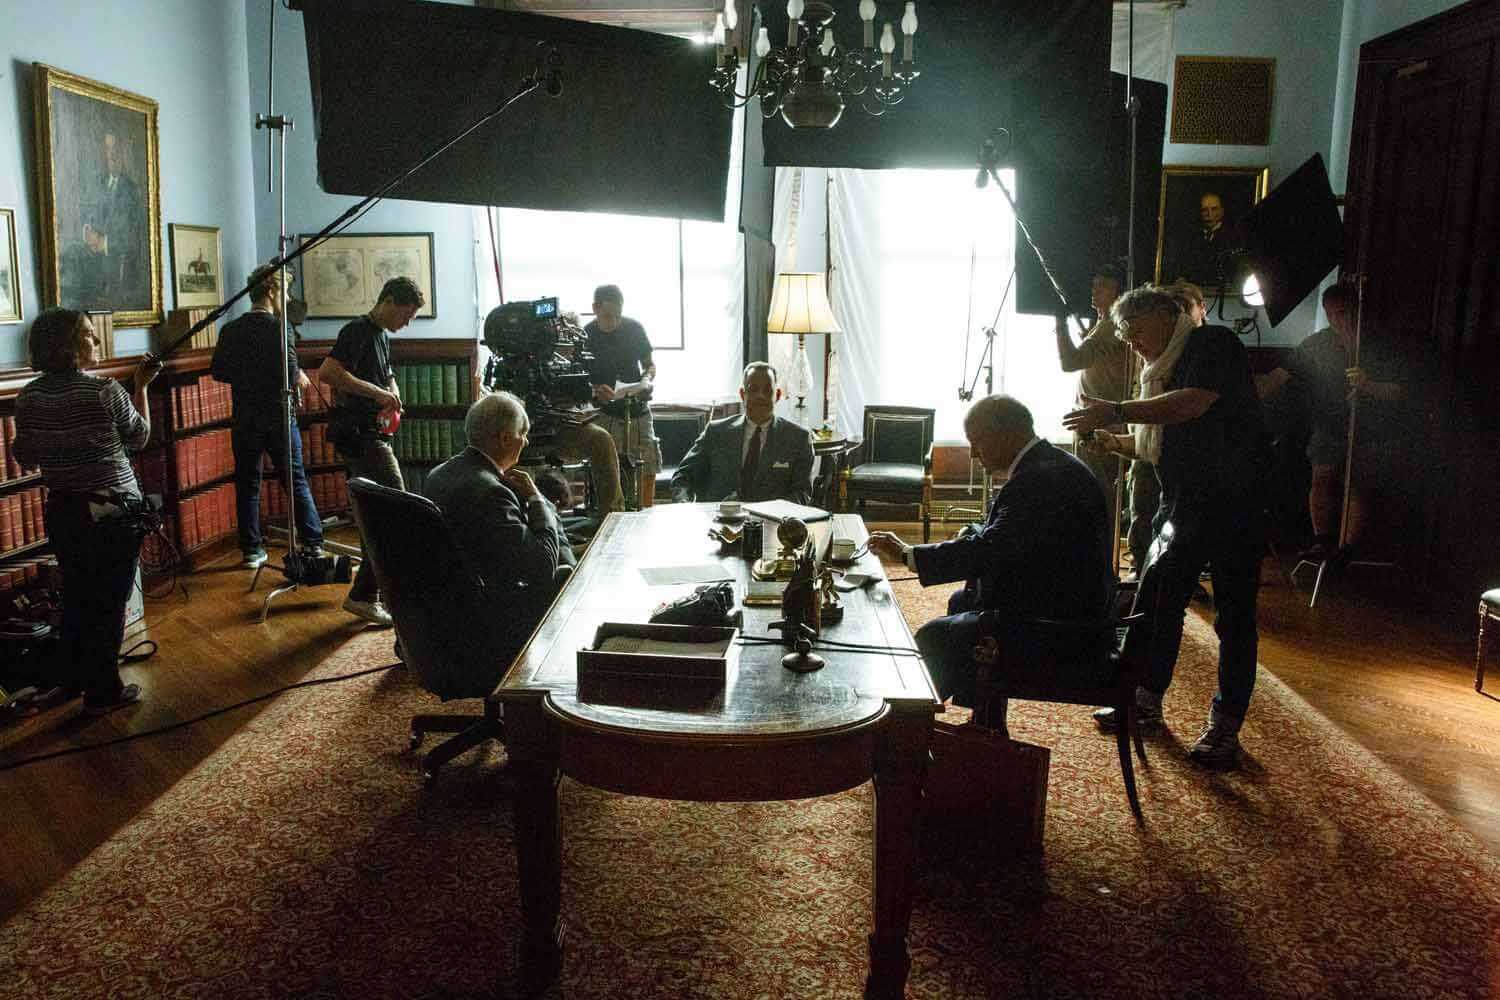 Film Lighting Techniques - 3-Point Lighting - Bridge of Spies